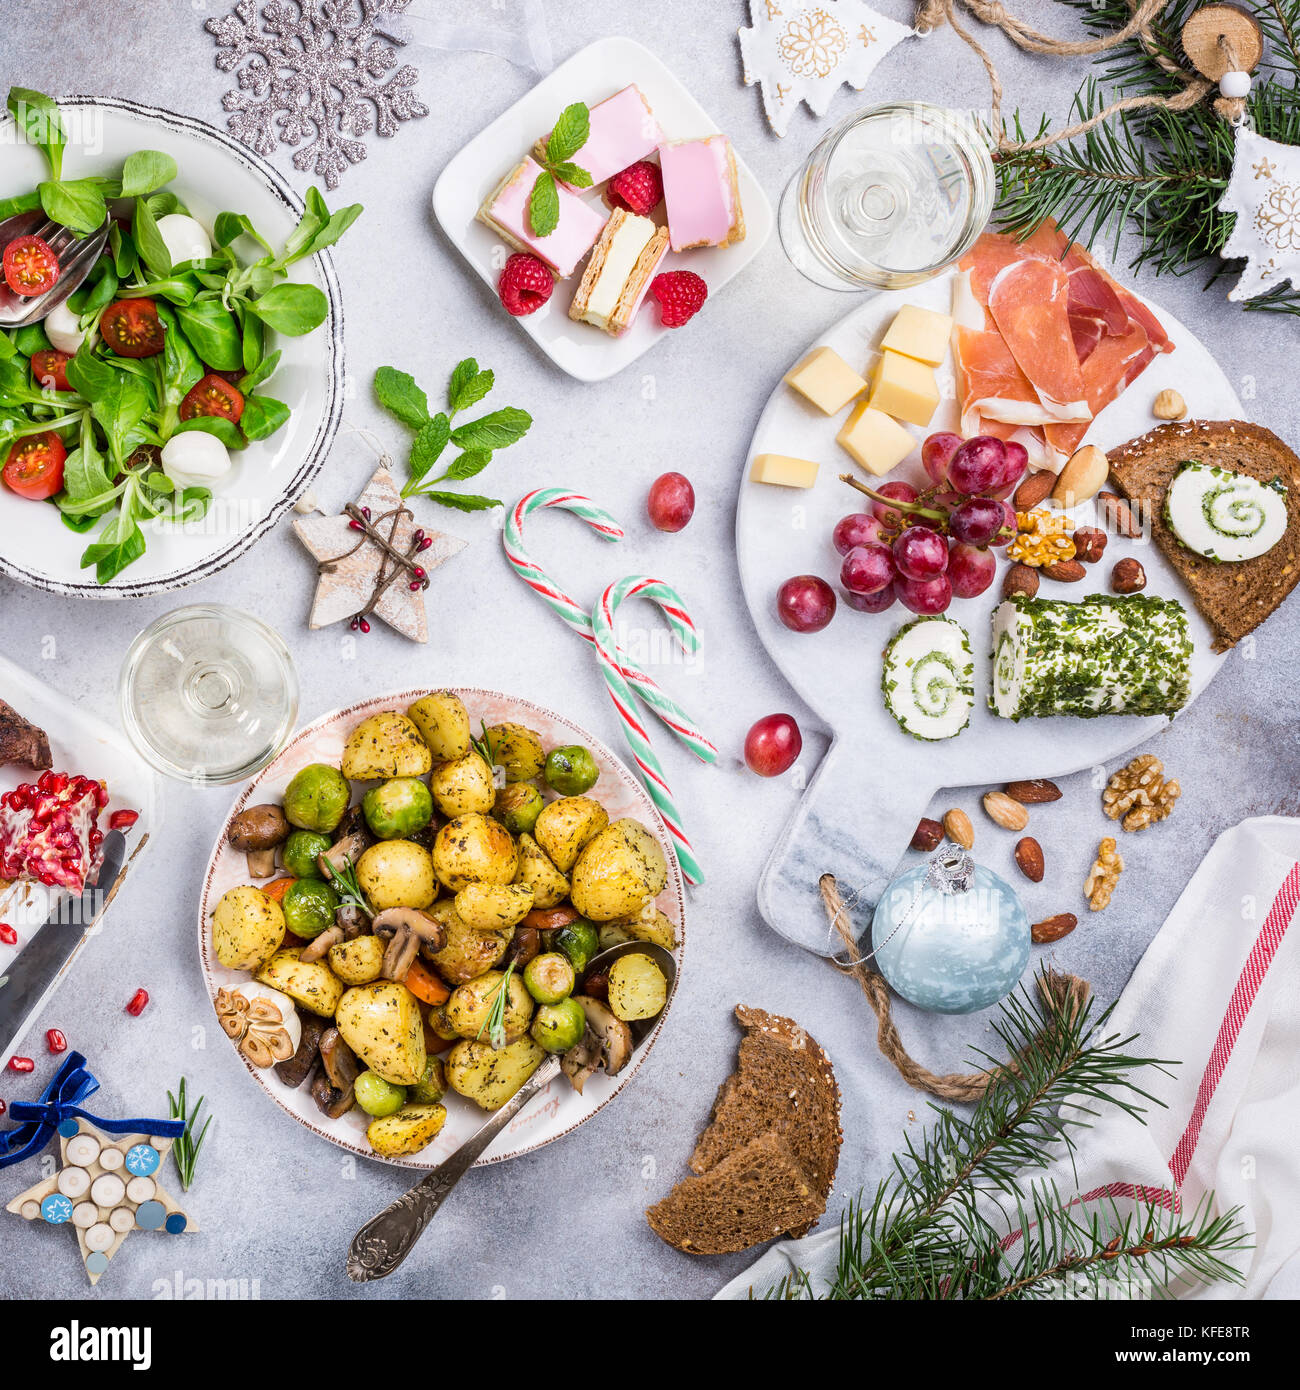 Christmas themed dinner table - Stock Image